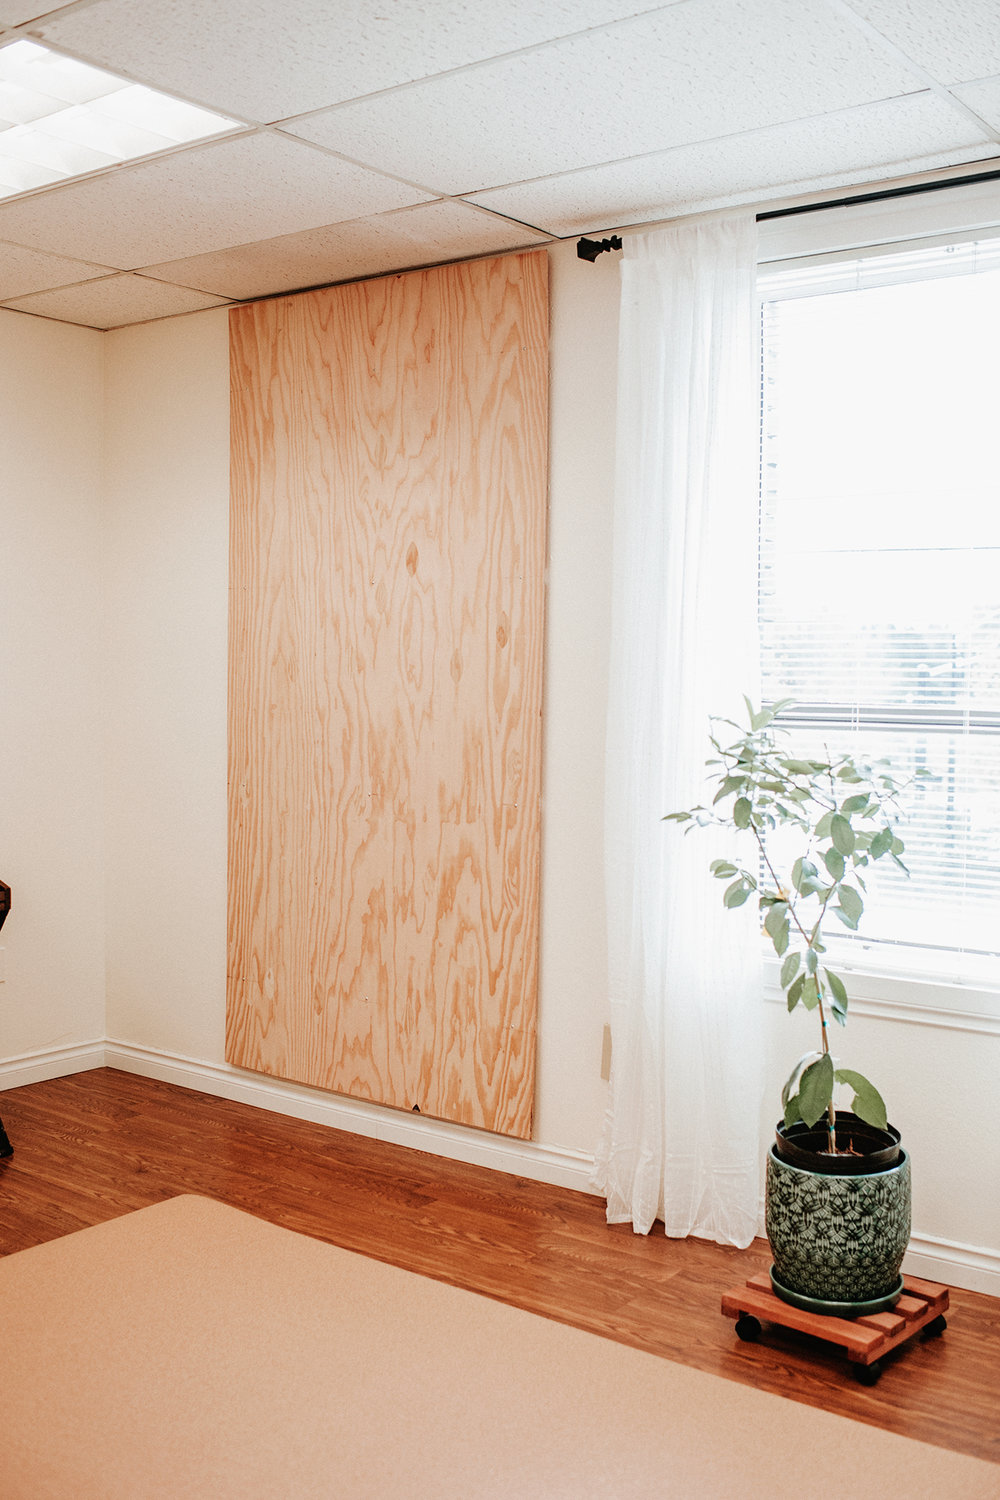 Diy Cork Board Office Wall Plywood Mounted